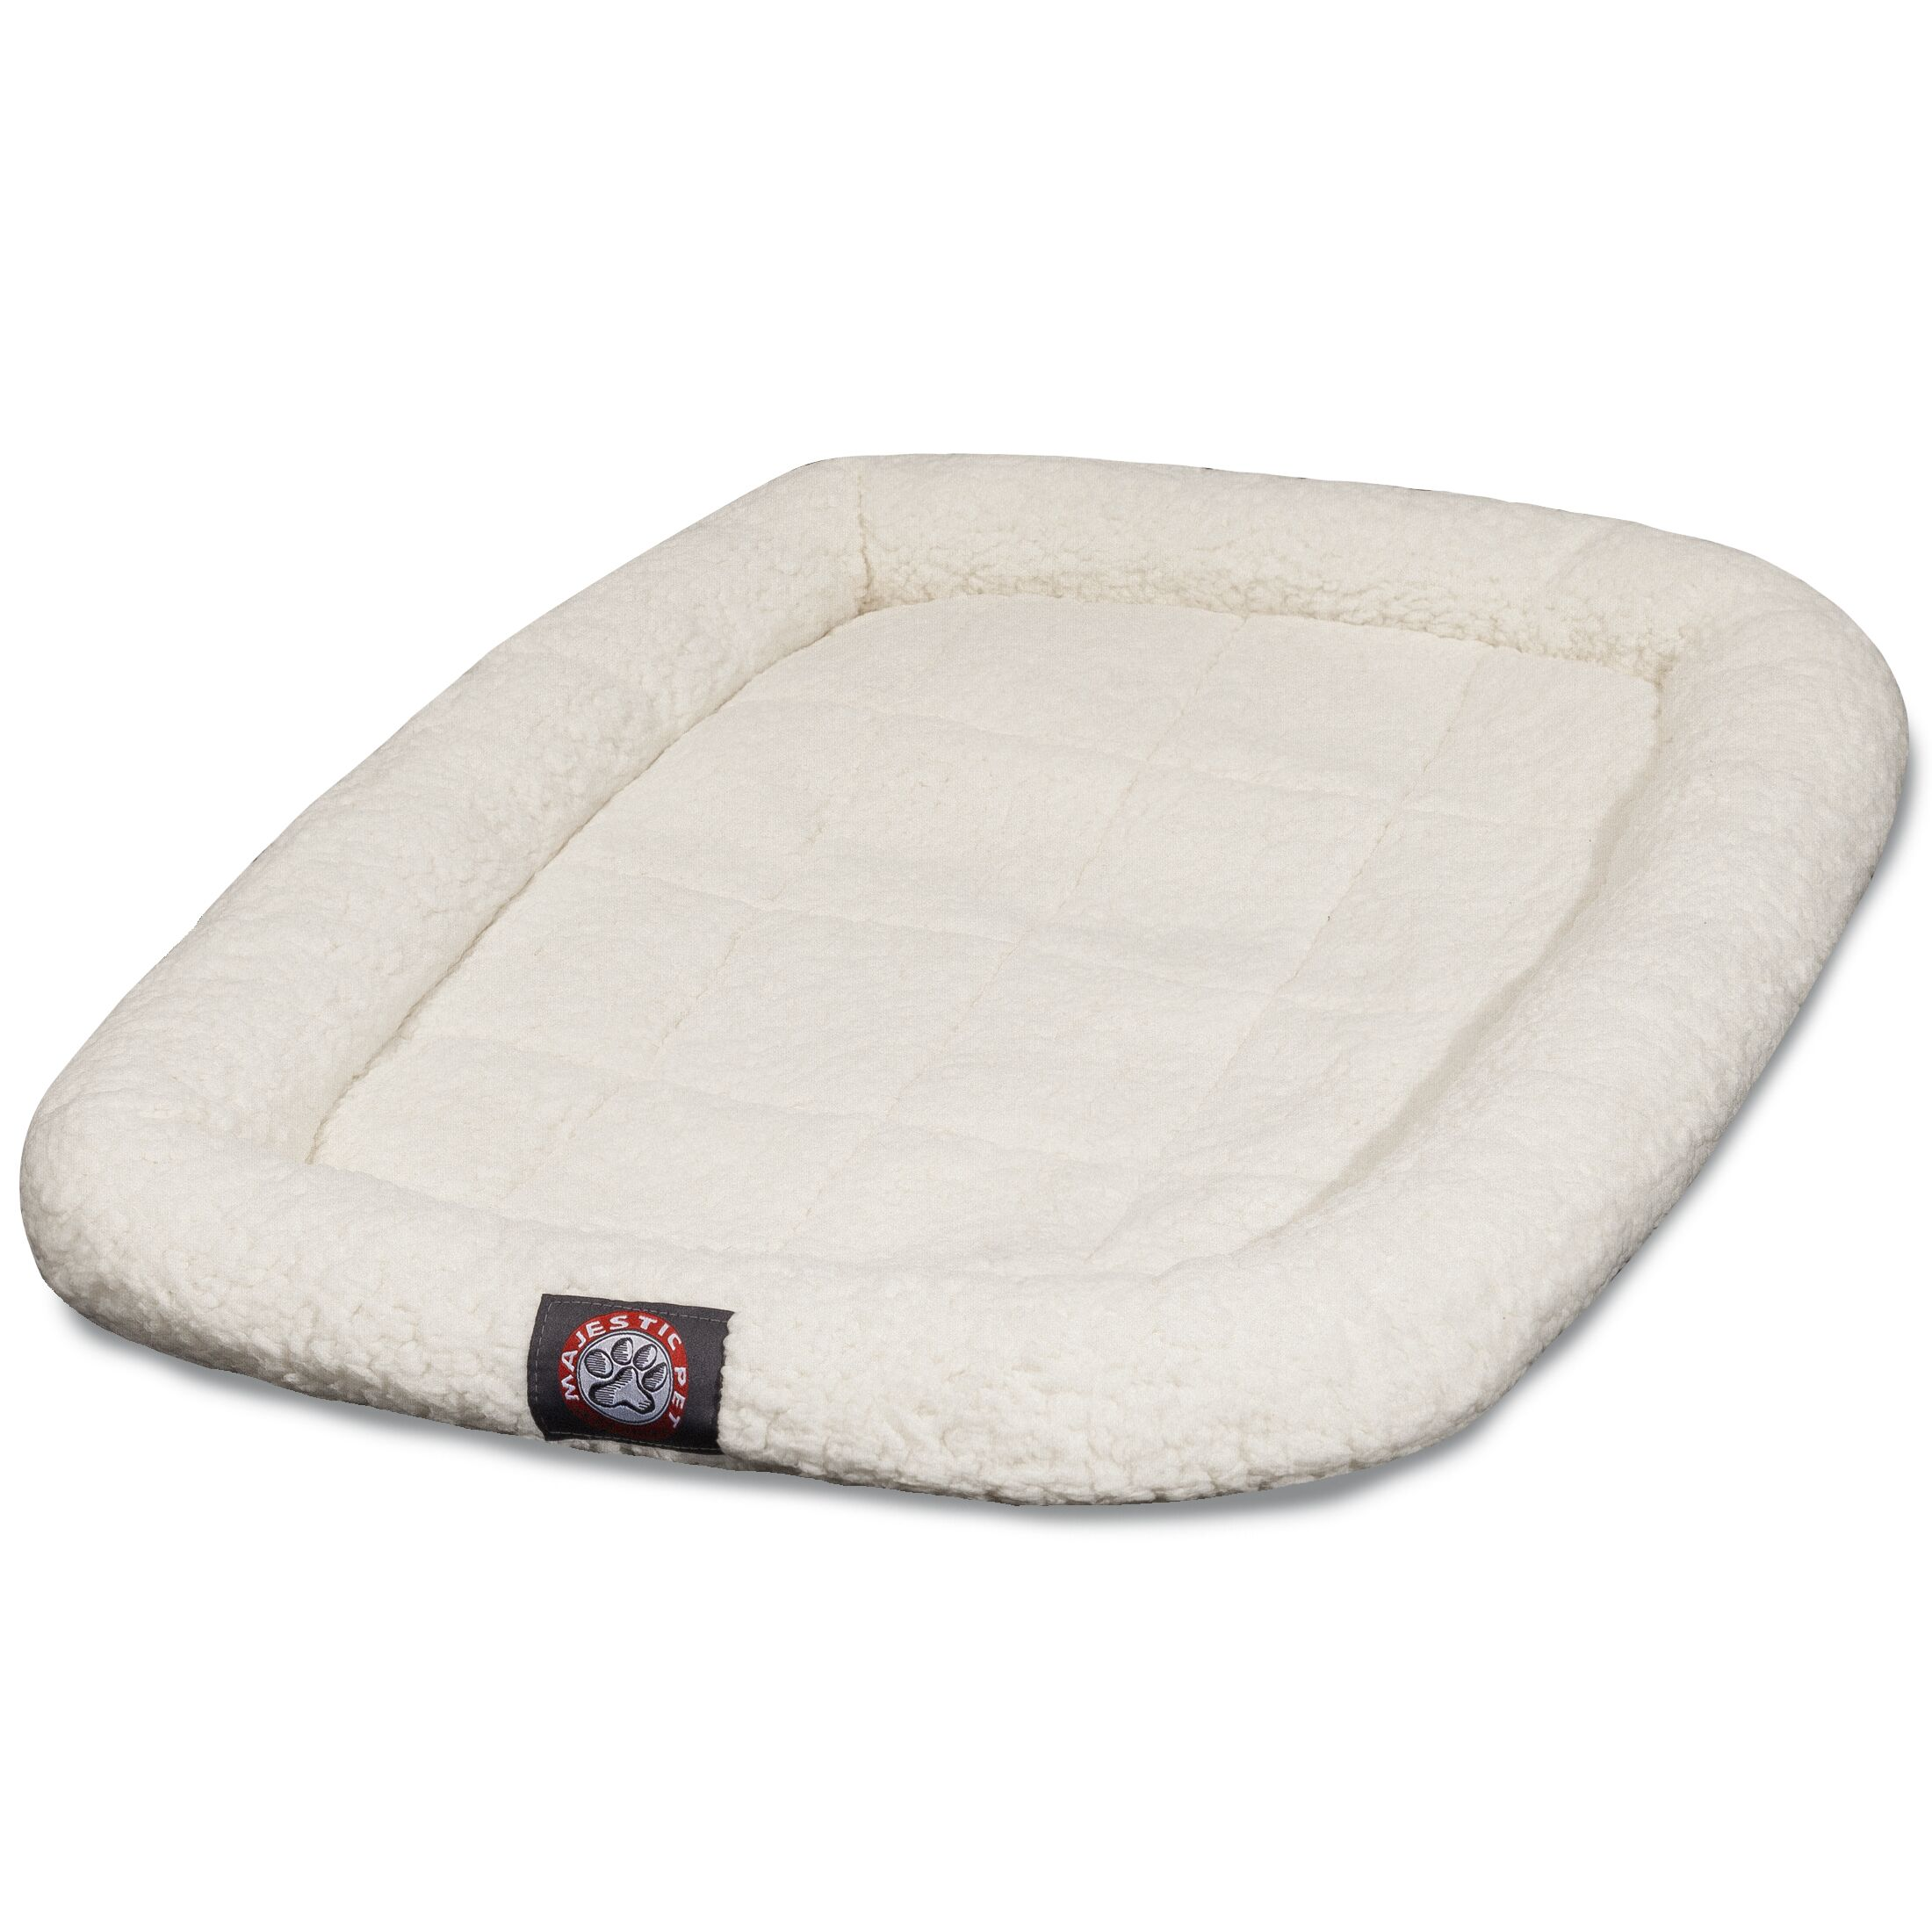 Cotton Crate Donut Dog Bed Color: Sherpa, Size: Small (24